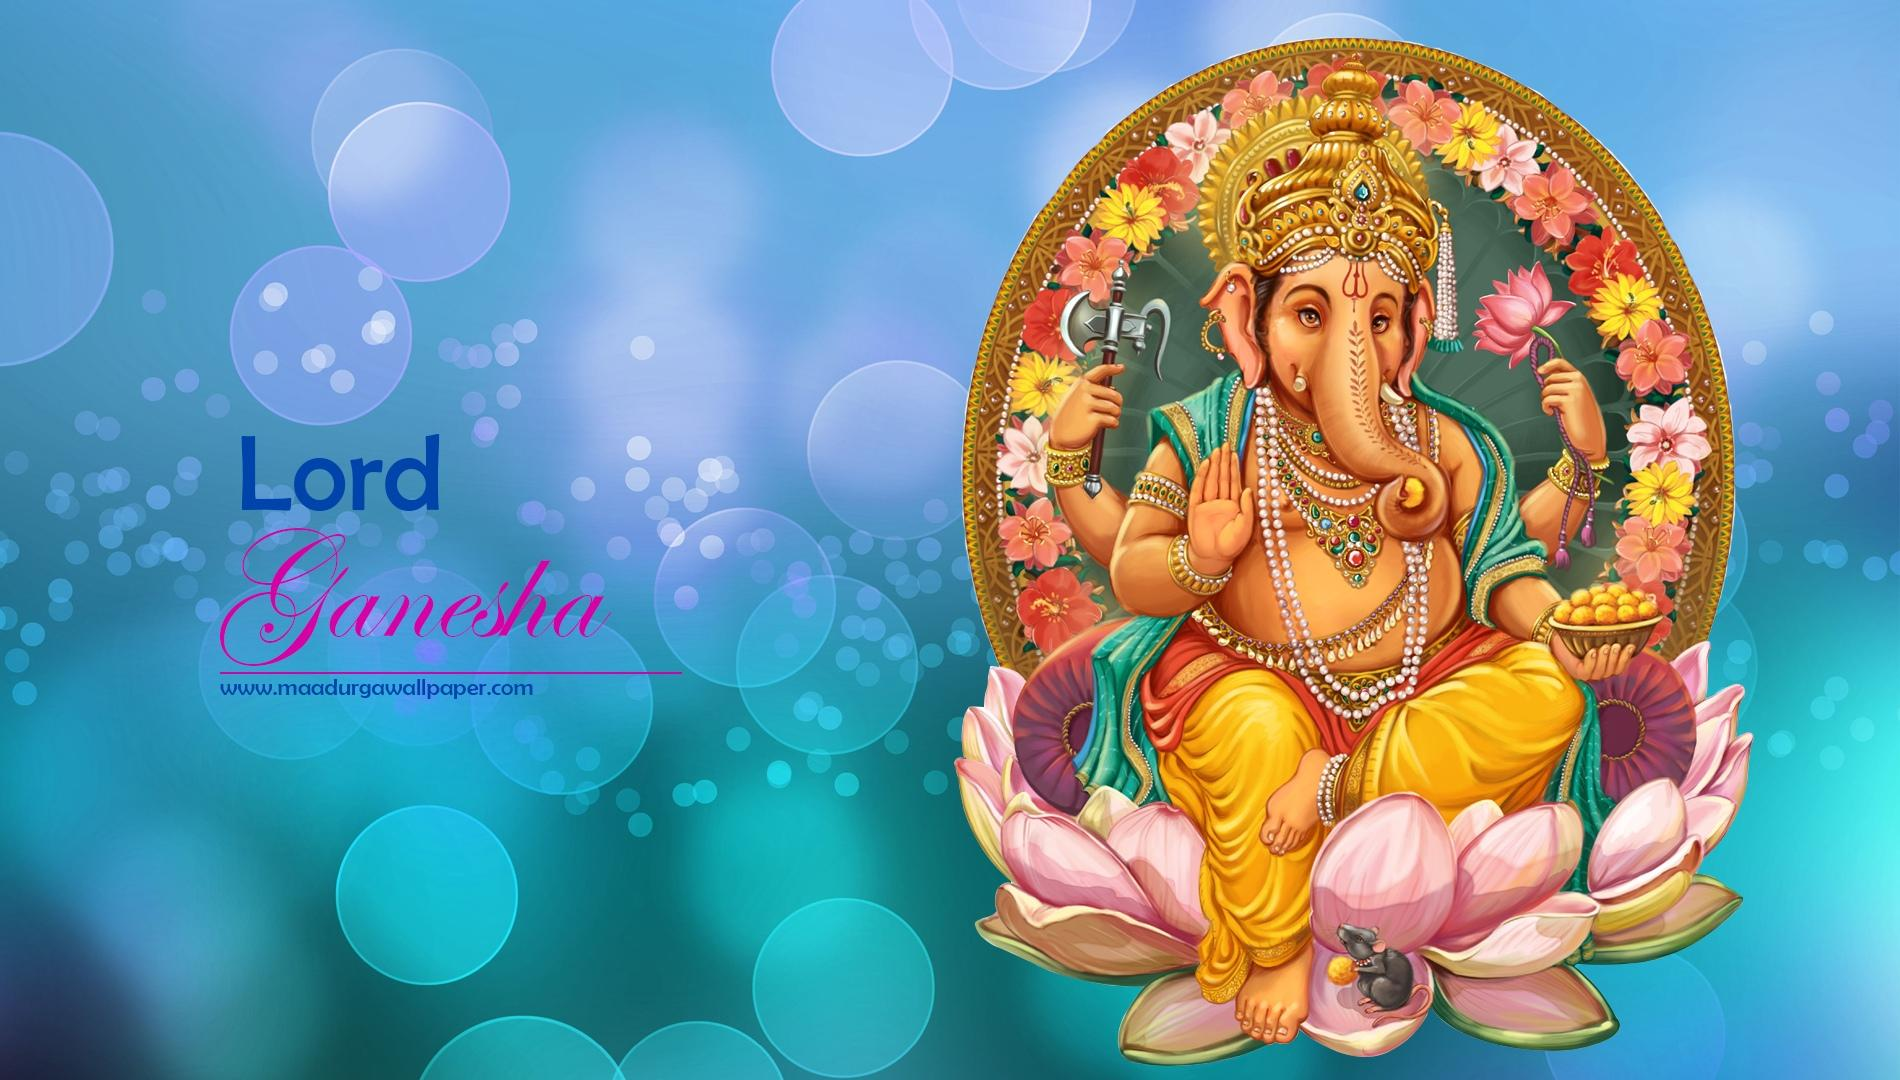 Hd Wallpapers For Pc Lord Ganesha